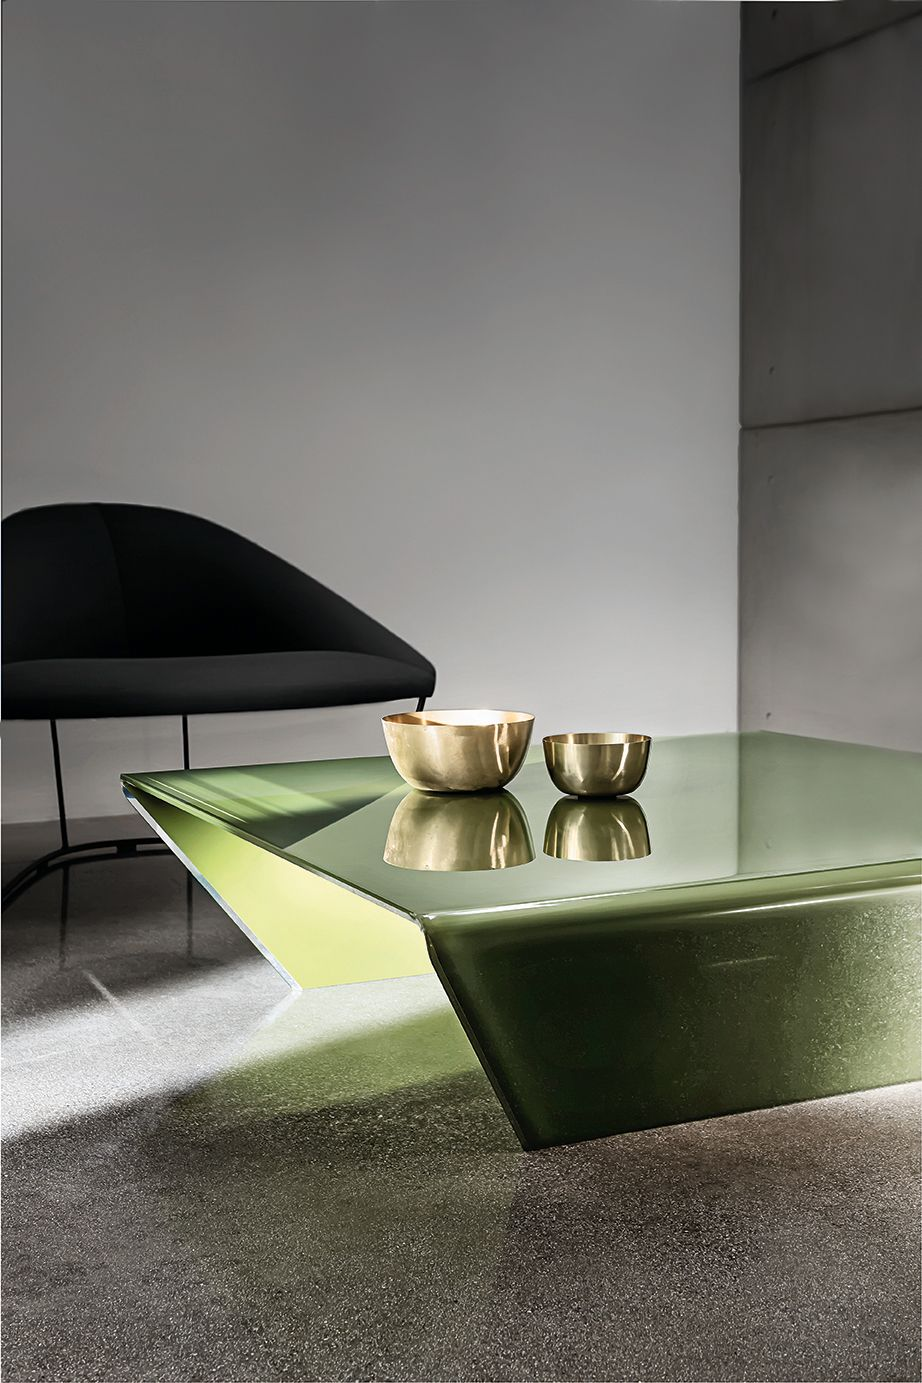 The Rubino Coffee Table A Jewel For Your Living Spaces Sovet Sovetitalia Design Decor Interio Modern Glass Coffee Table Glass Coffee Table Coffee Table [ 1383 x 922 Pixel ]